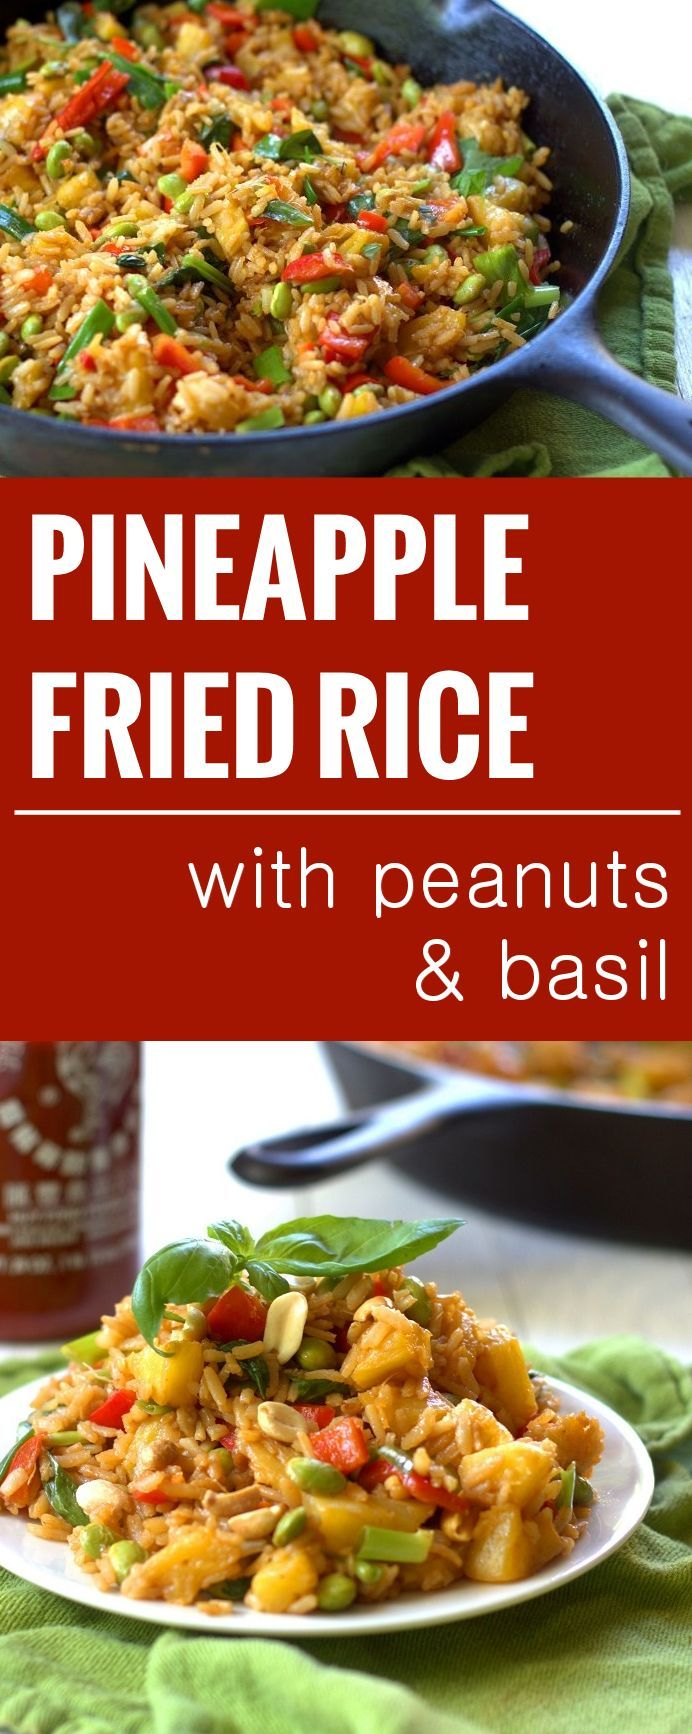 pinapple-fried-rice-long: However, if you're looking for a 'clean' recipie, you could replace the rice with cauliflower rice or even quinoa! I think pineapple in a stir fry is so tasty! And it's great for weight loss too